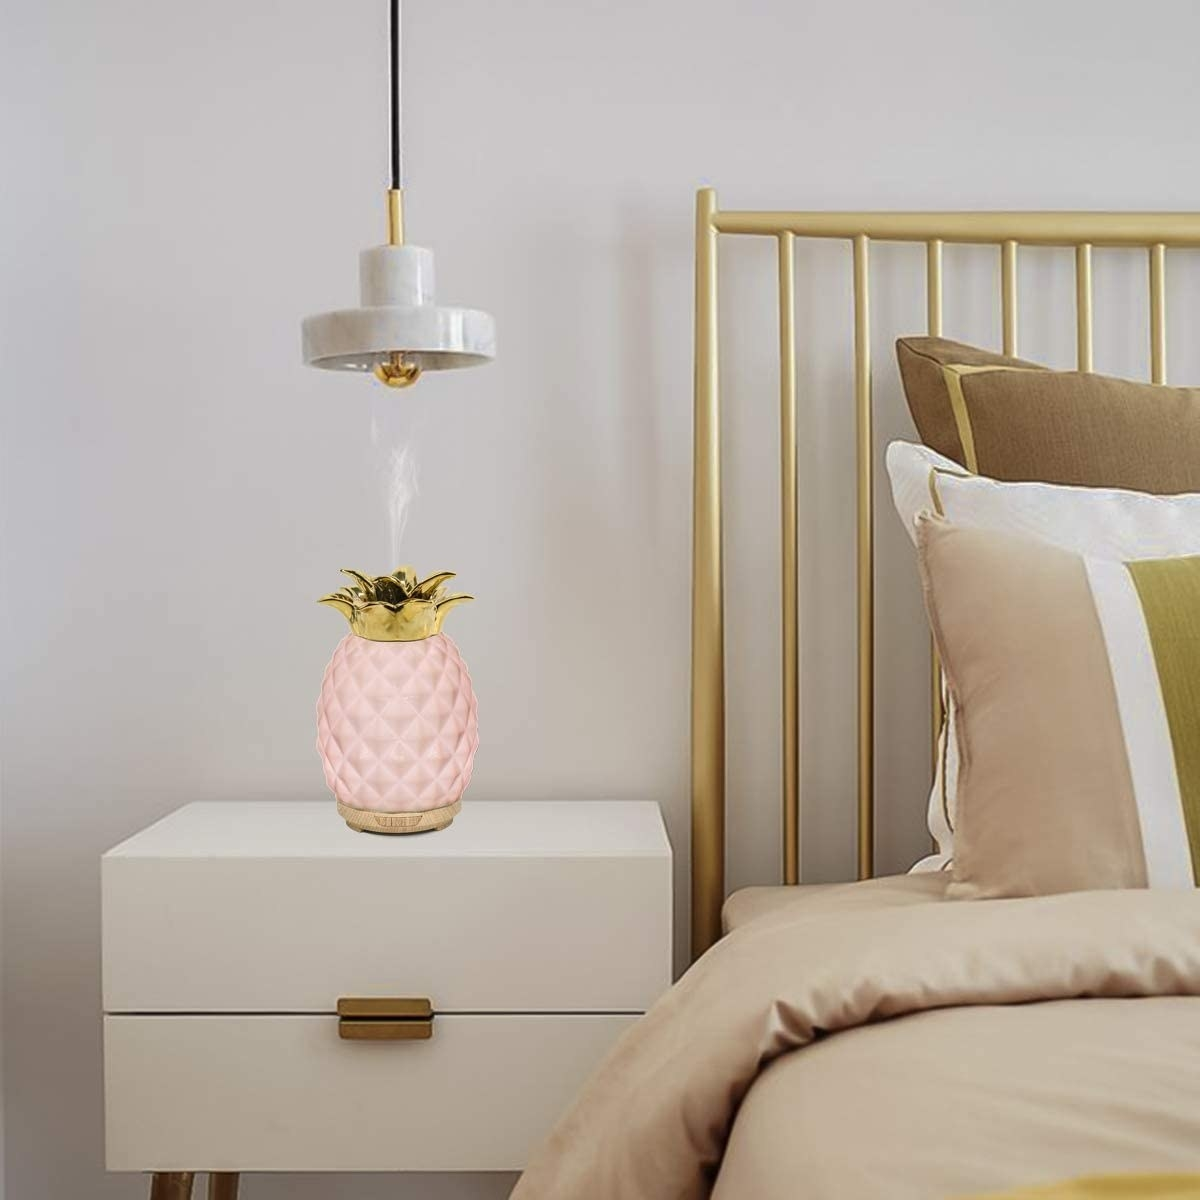 diffuser on a bedside table